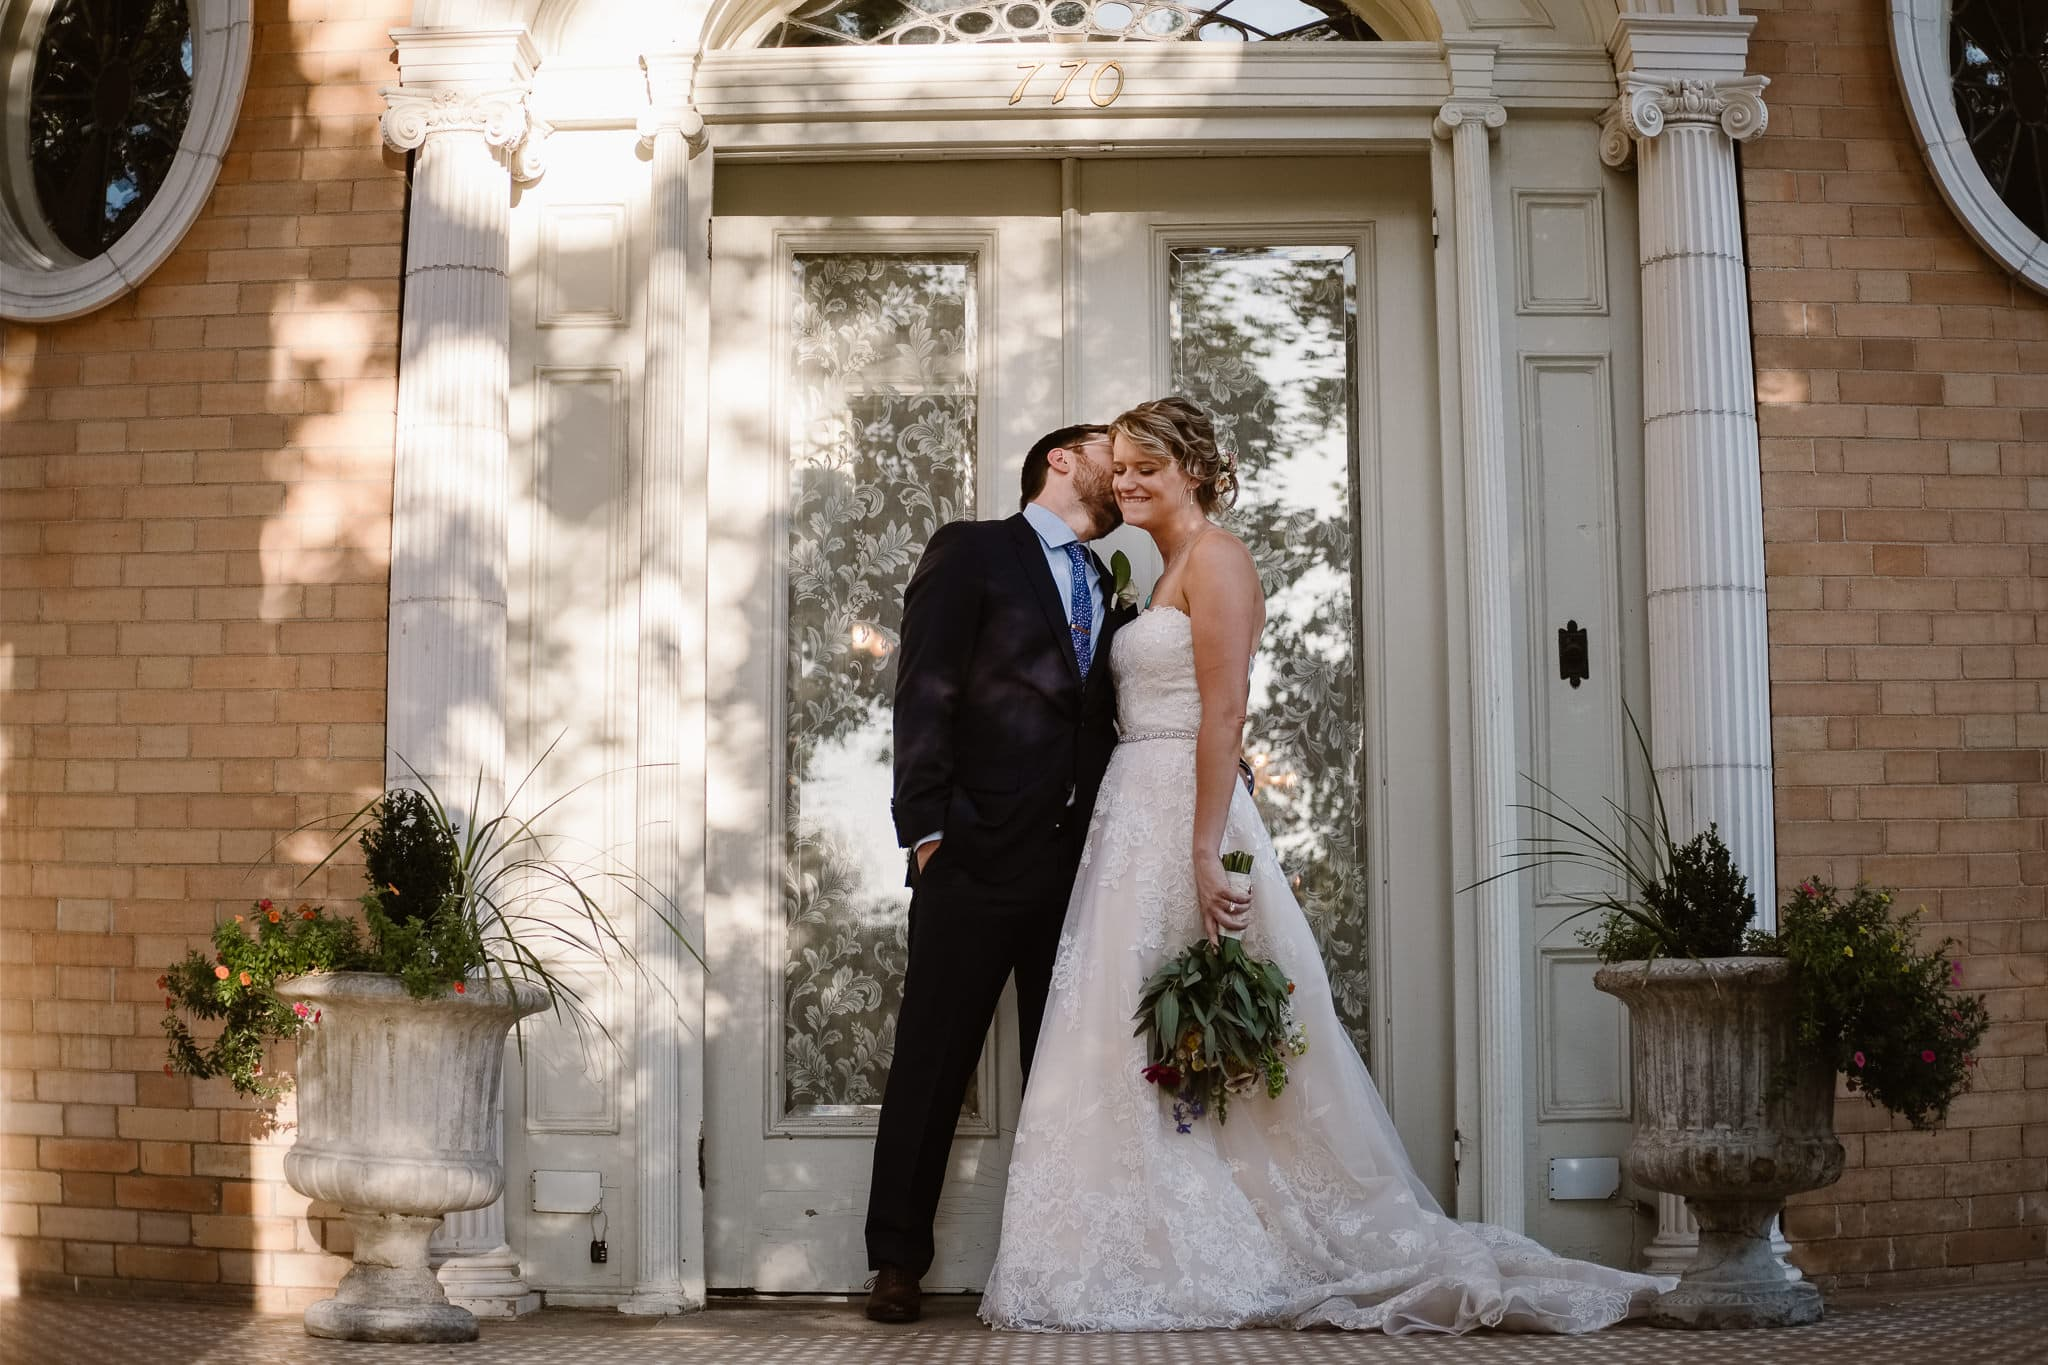 Grant Humphreys Mansion Wedding Photographer, Denver wedding photographer, Colorado wedding photographer, bride and groom portraits, French chateau wedding